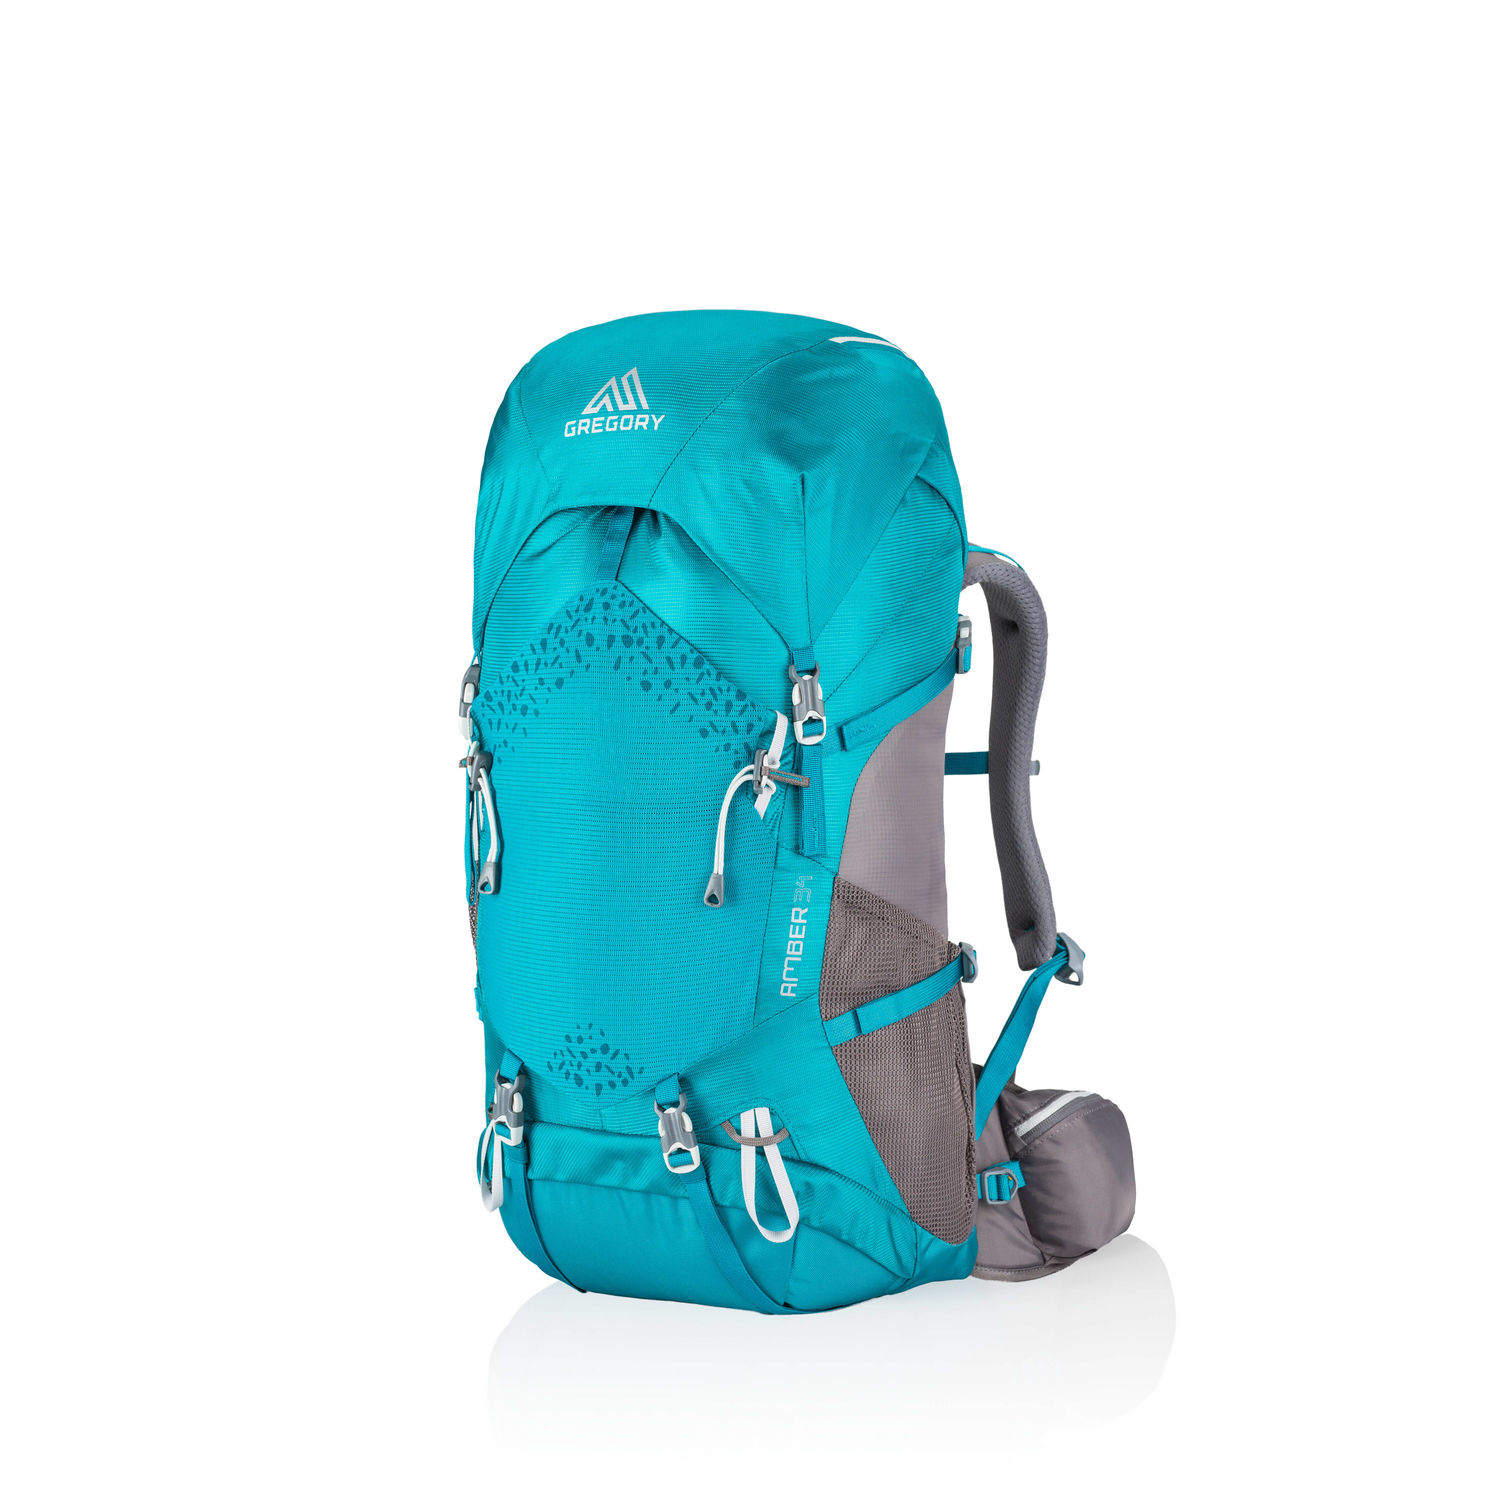 GREGORY Amber V2 44L for Women - Teal Grey